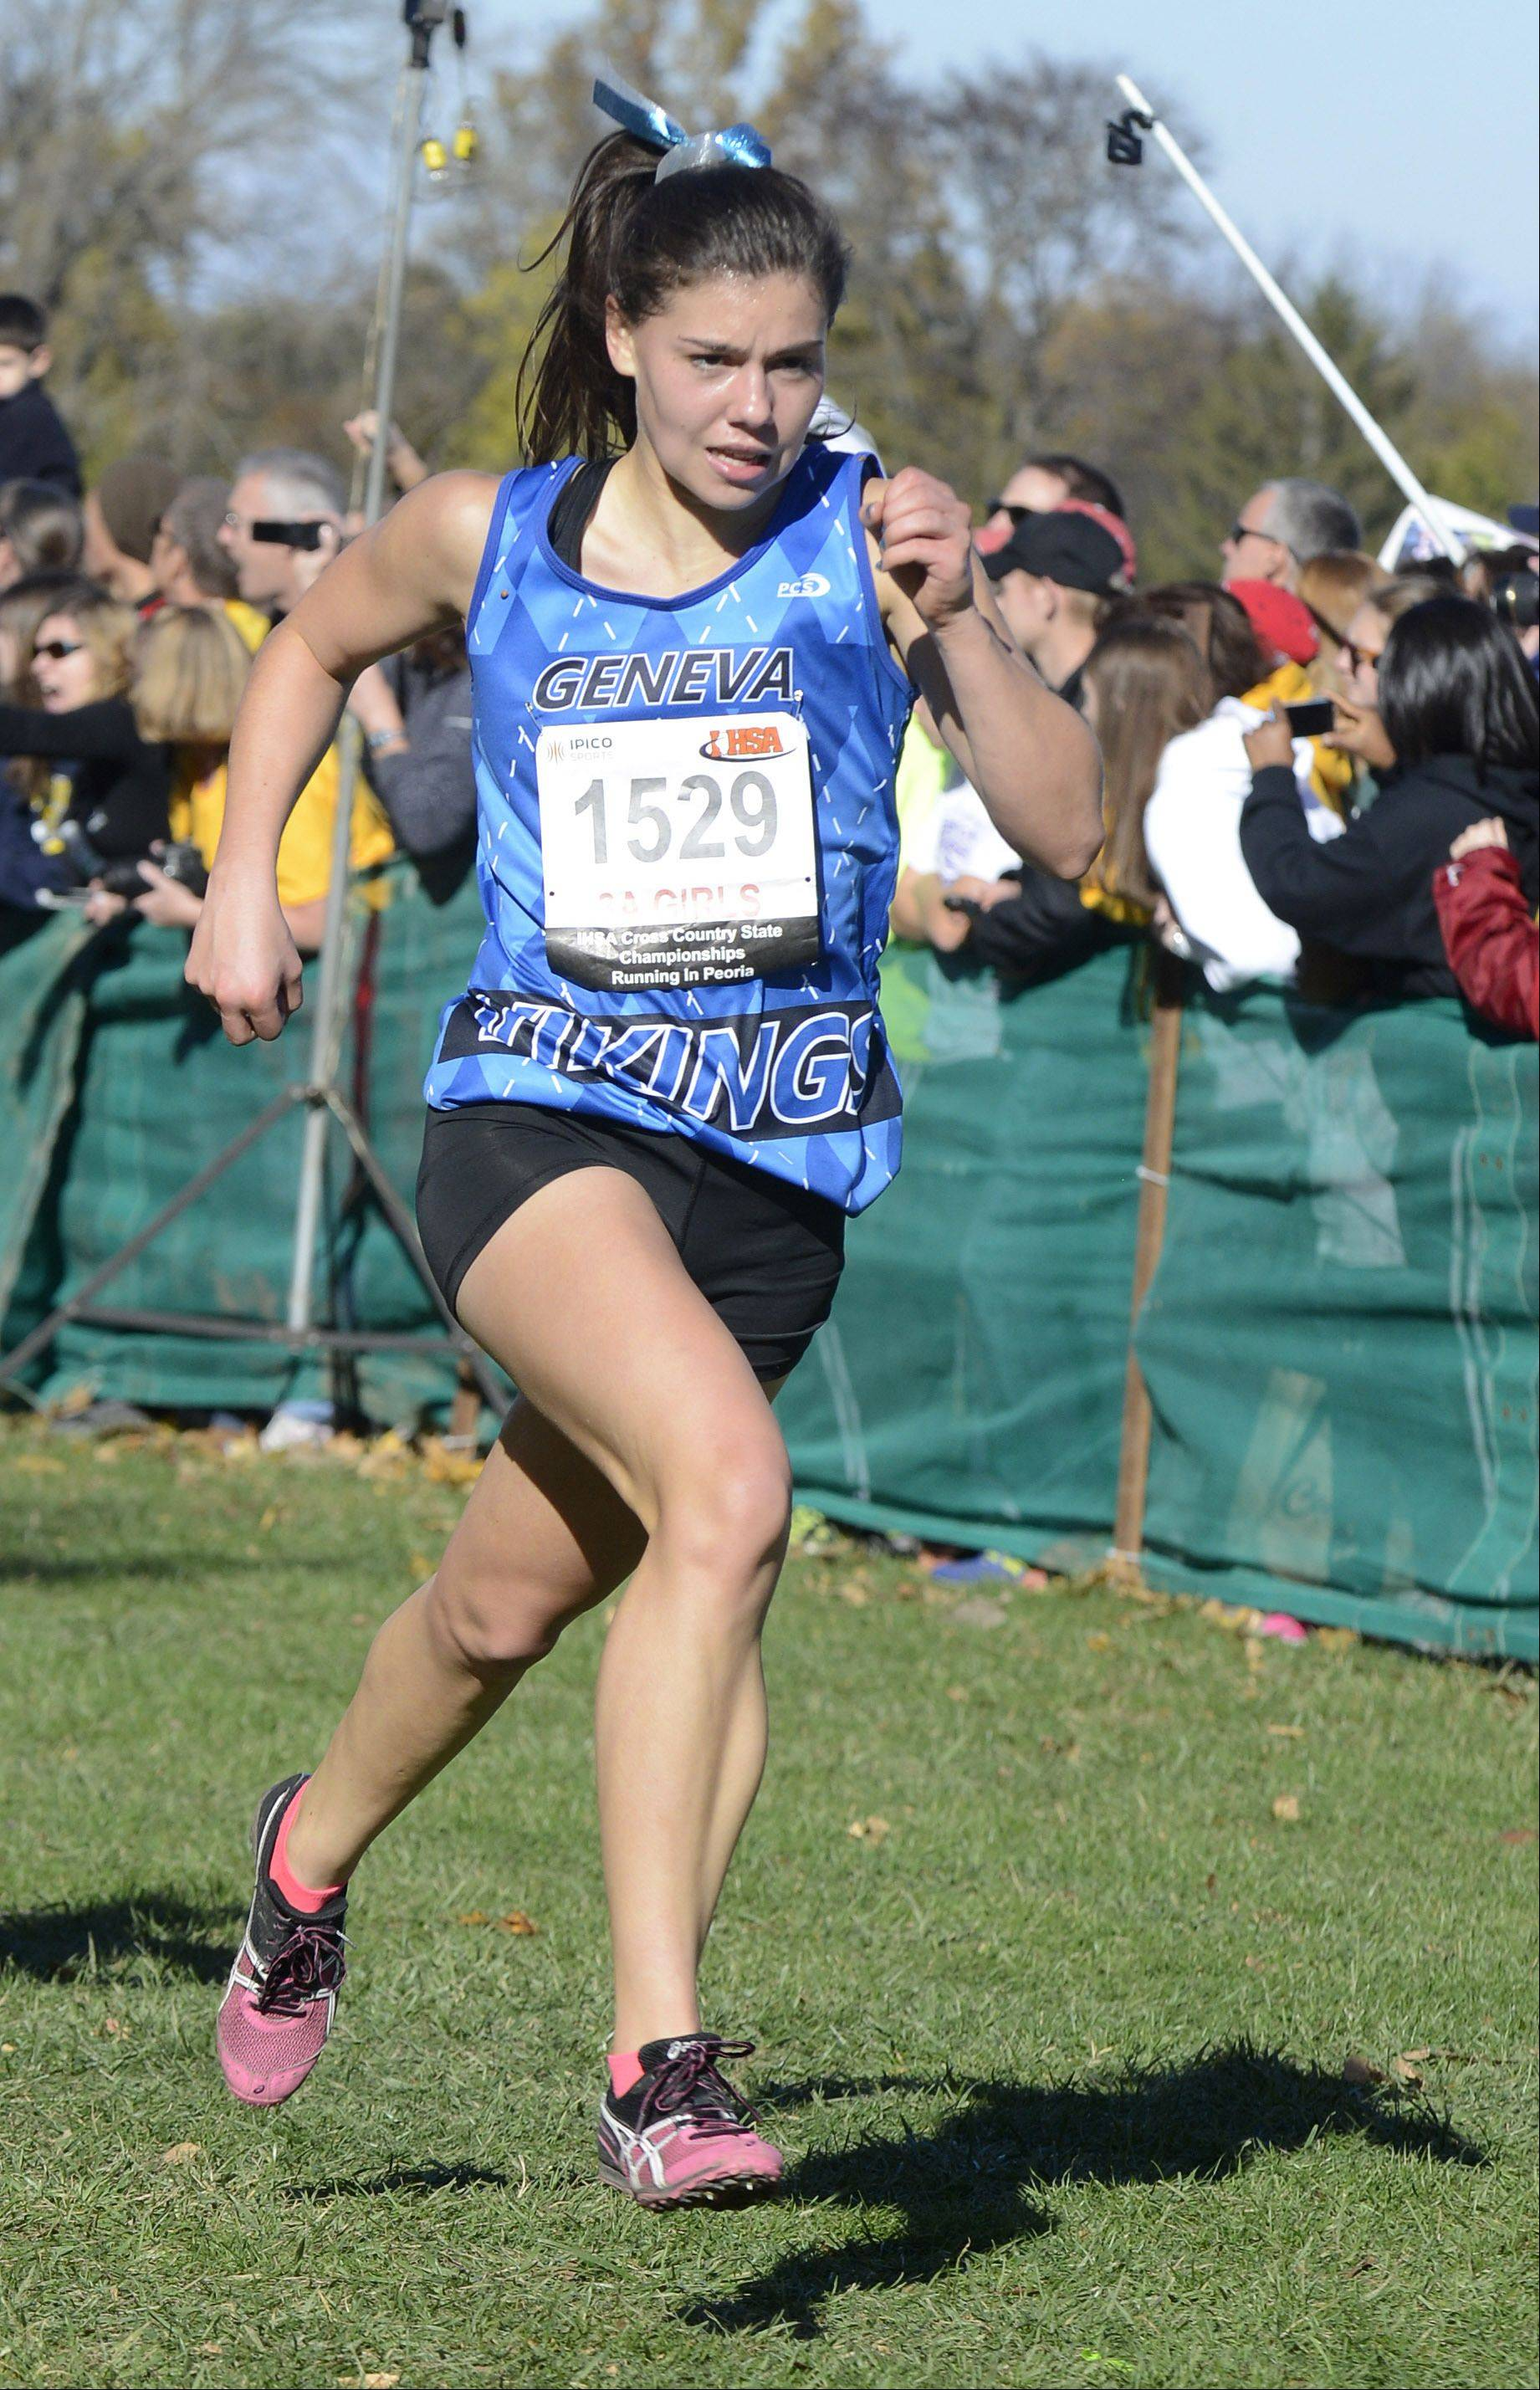 Geneva's Kathryn Adelman comes in 38th place at the Class 3A IHSA cross country state finals at Detweiller Park in Peoria on Saturday, November 9.